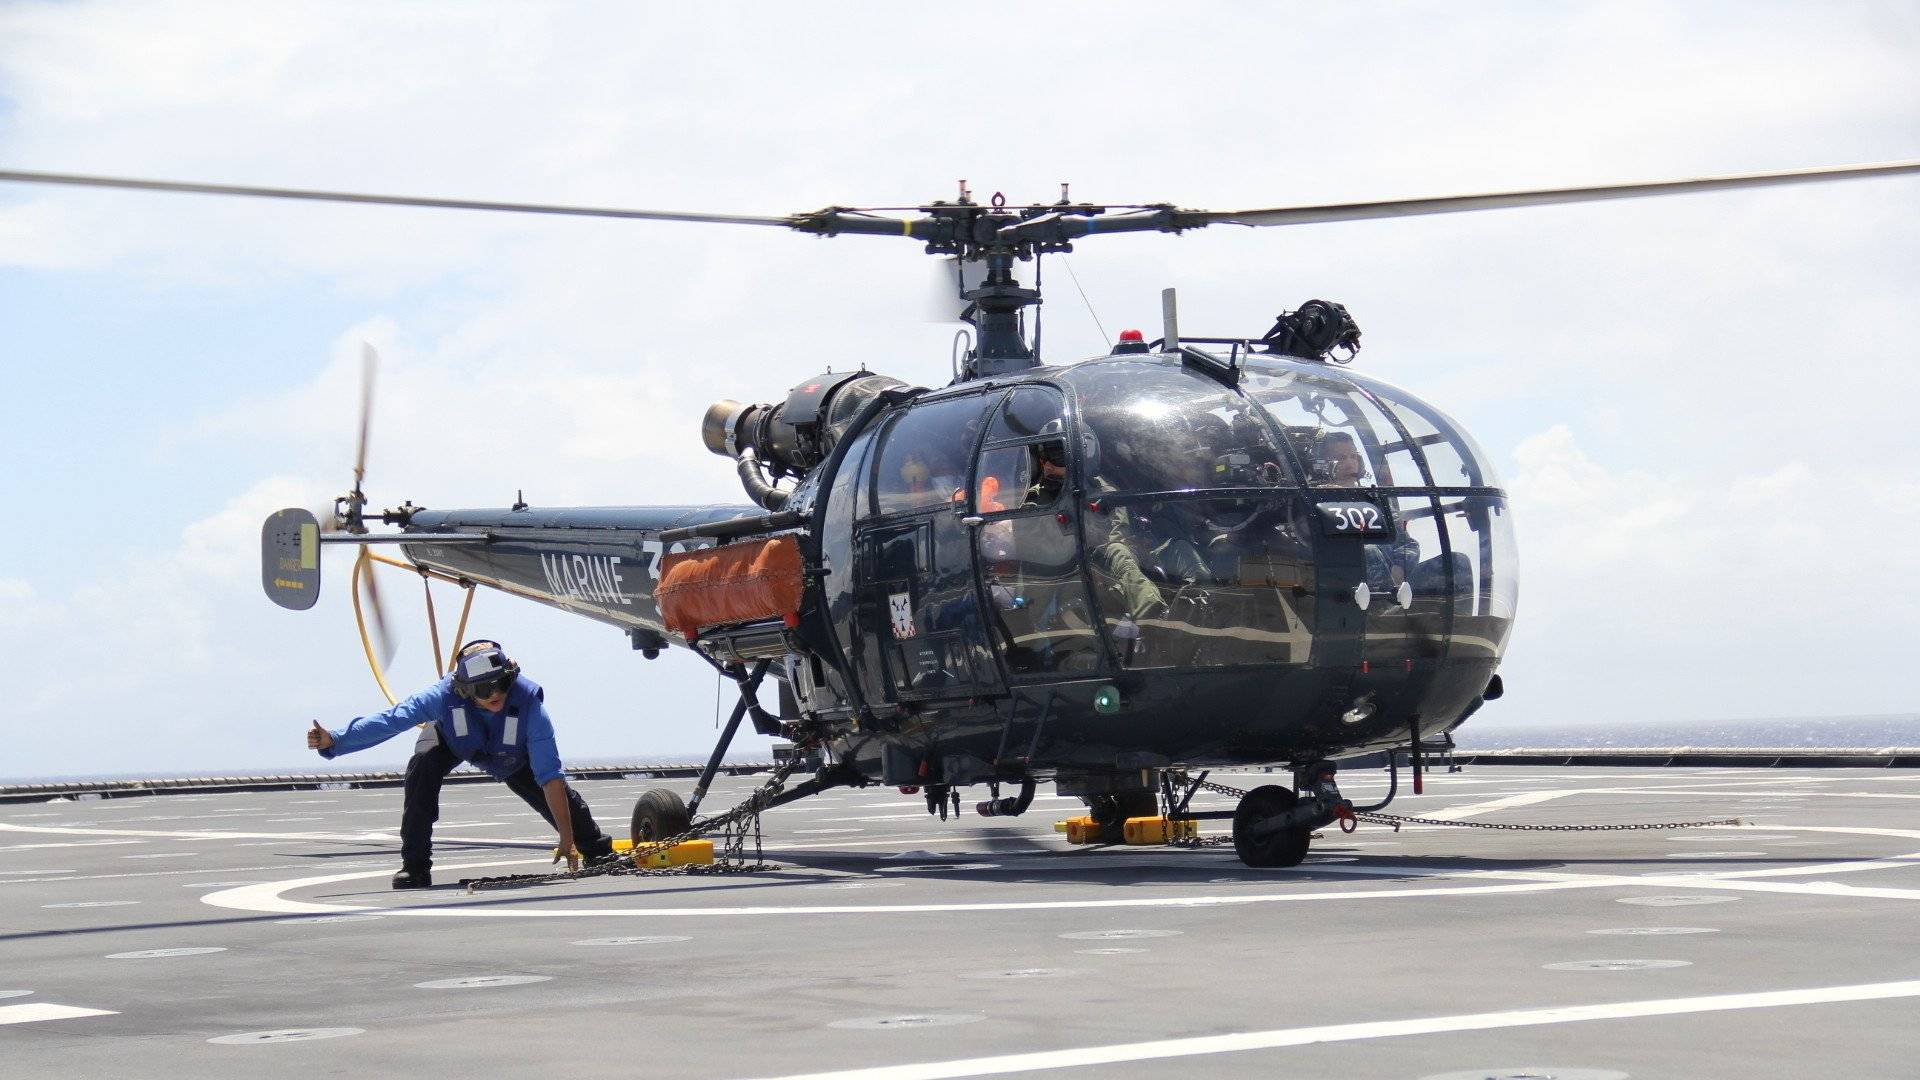 The French Navy will reportedly retire the last of its Alouette III light helicopters